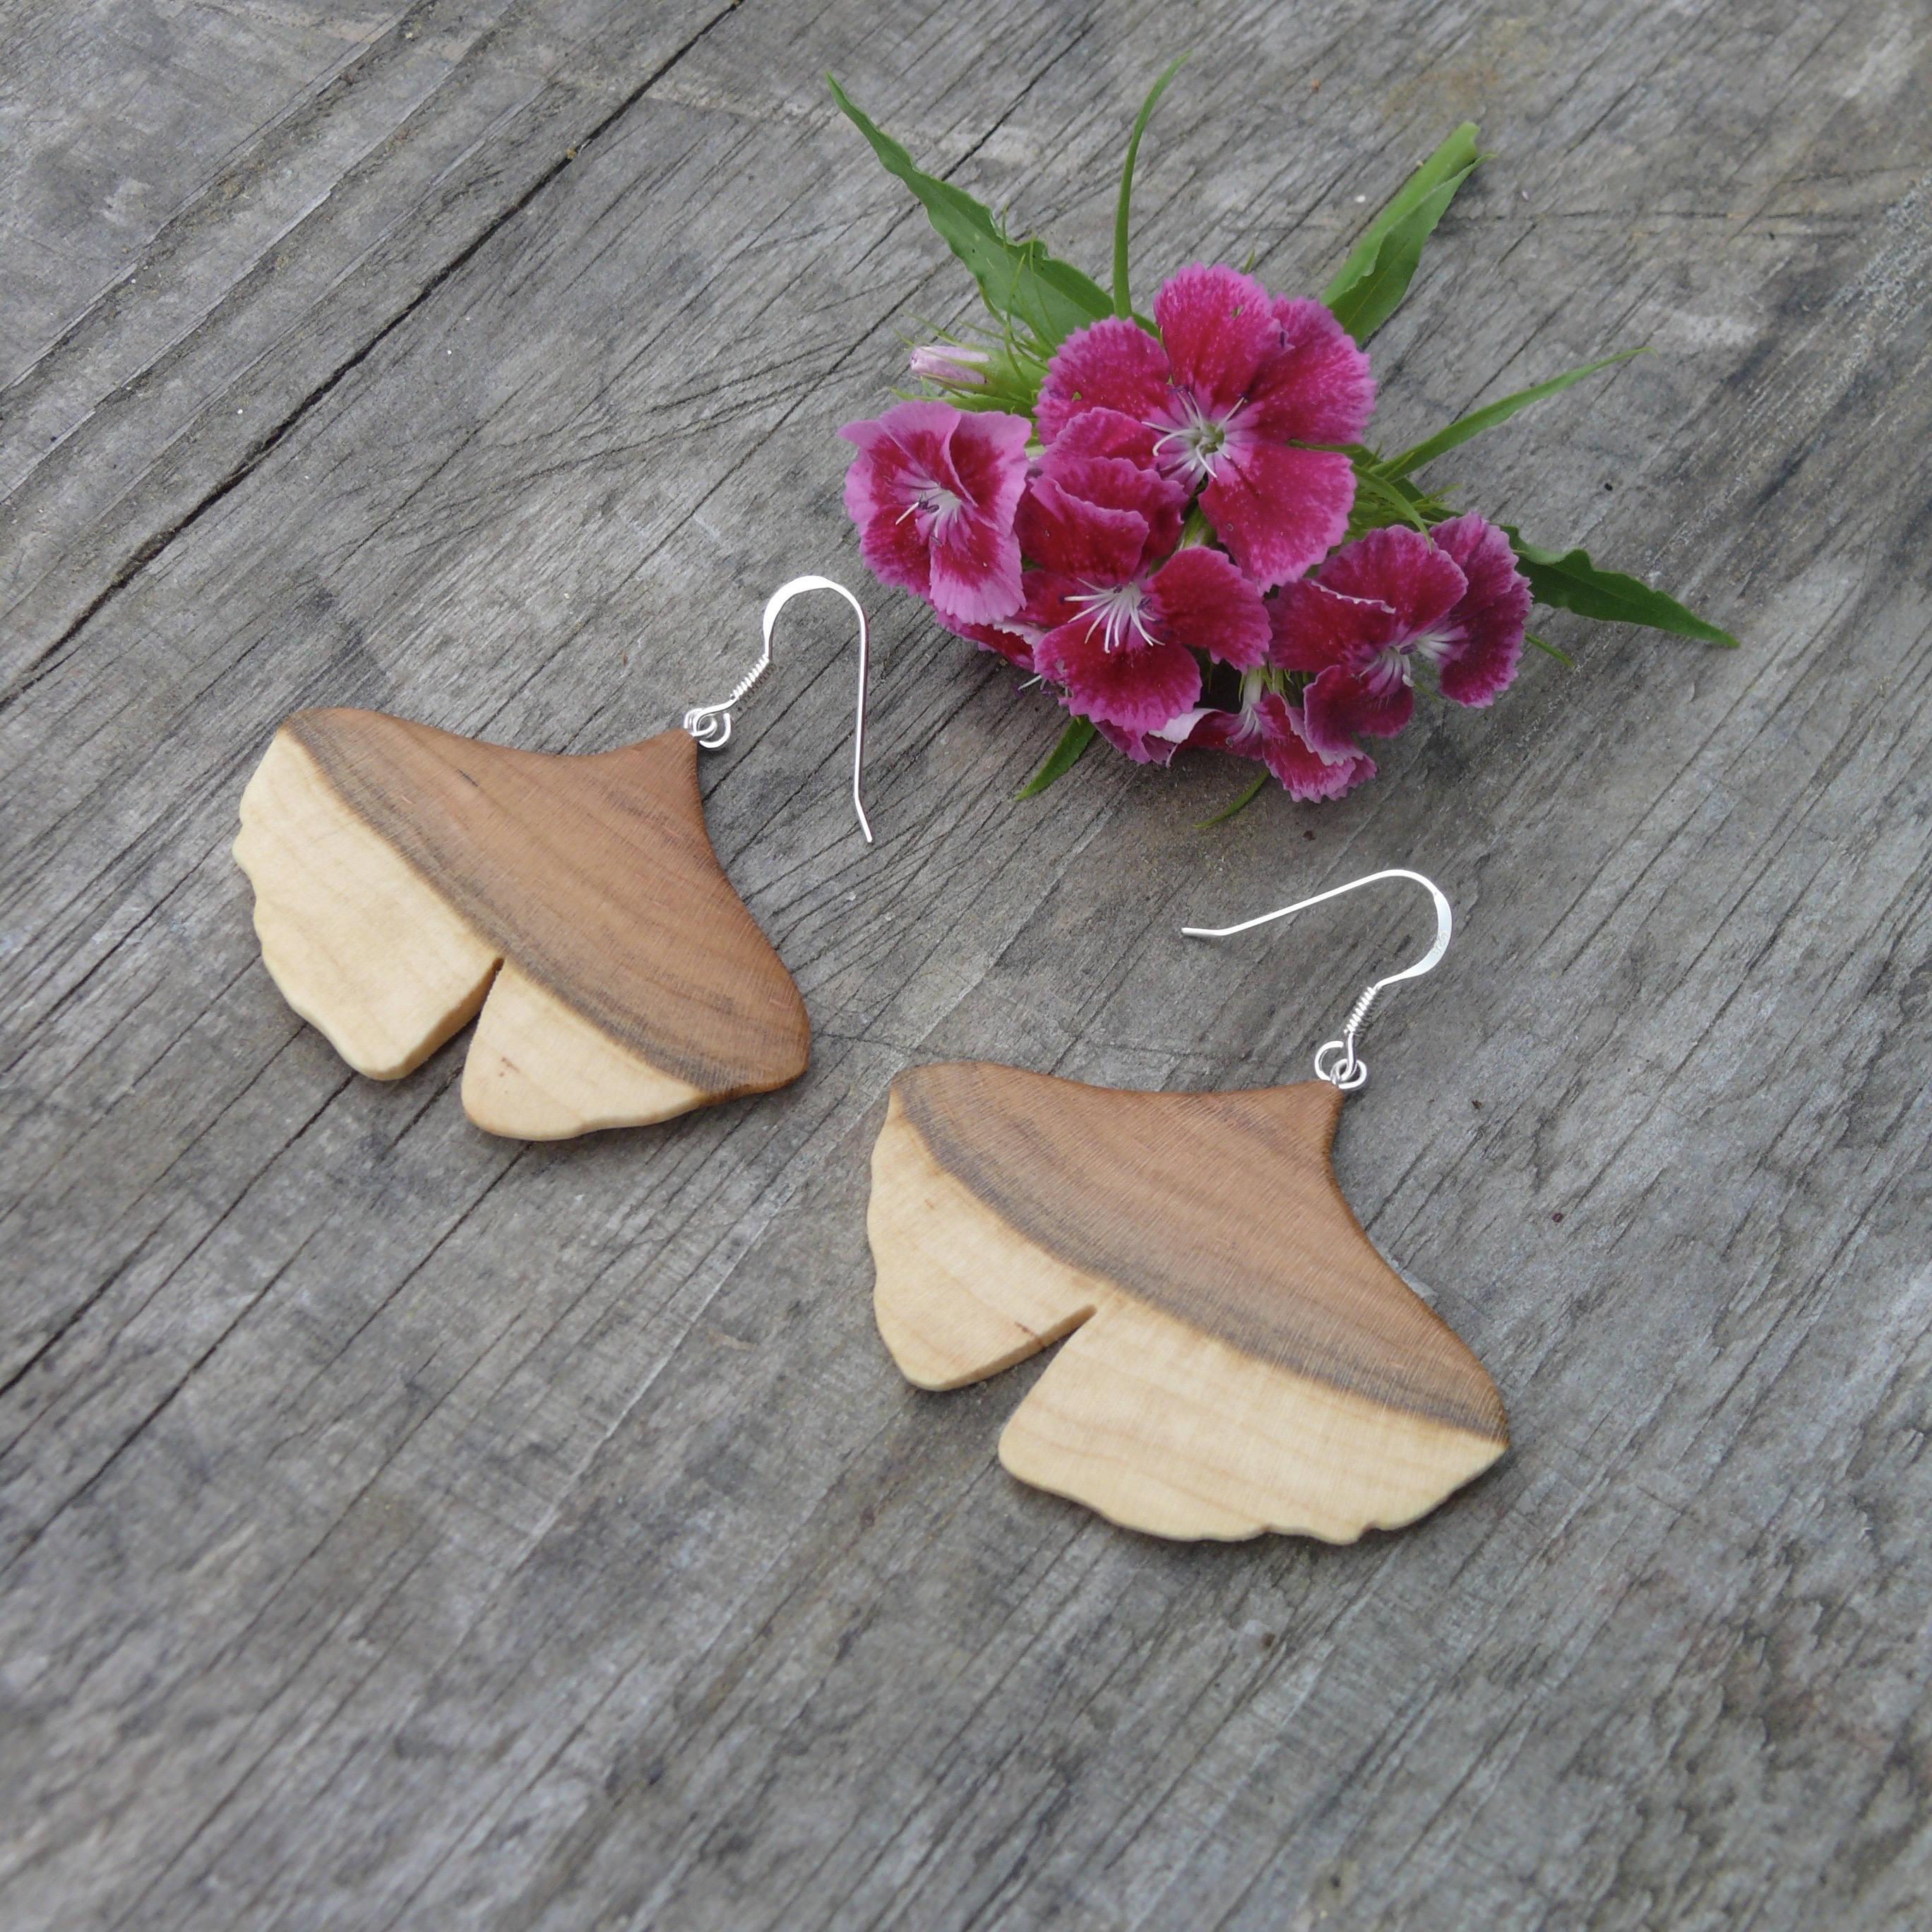 JemKlein wood ginko leaf earrings